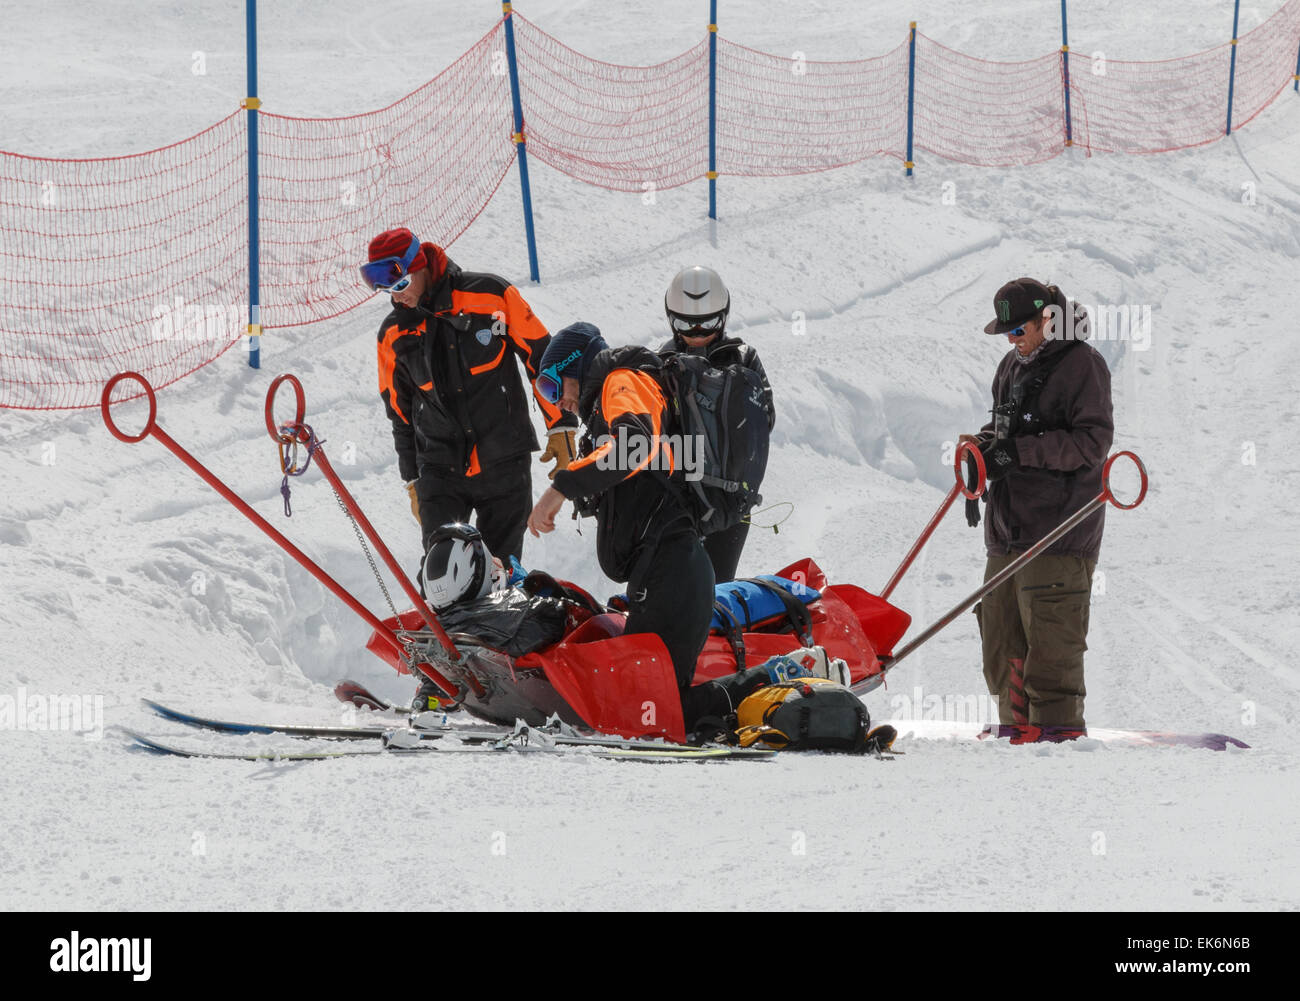 An injured skier on a rescue sledge after being helped by the ski patrol in the alps after a skiing  fall on a ski - Stock Image